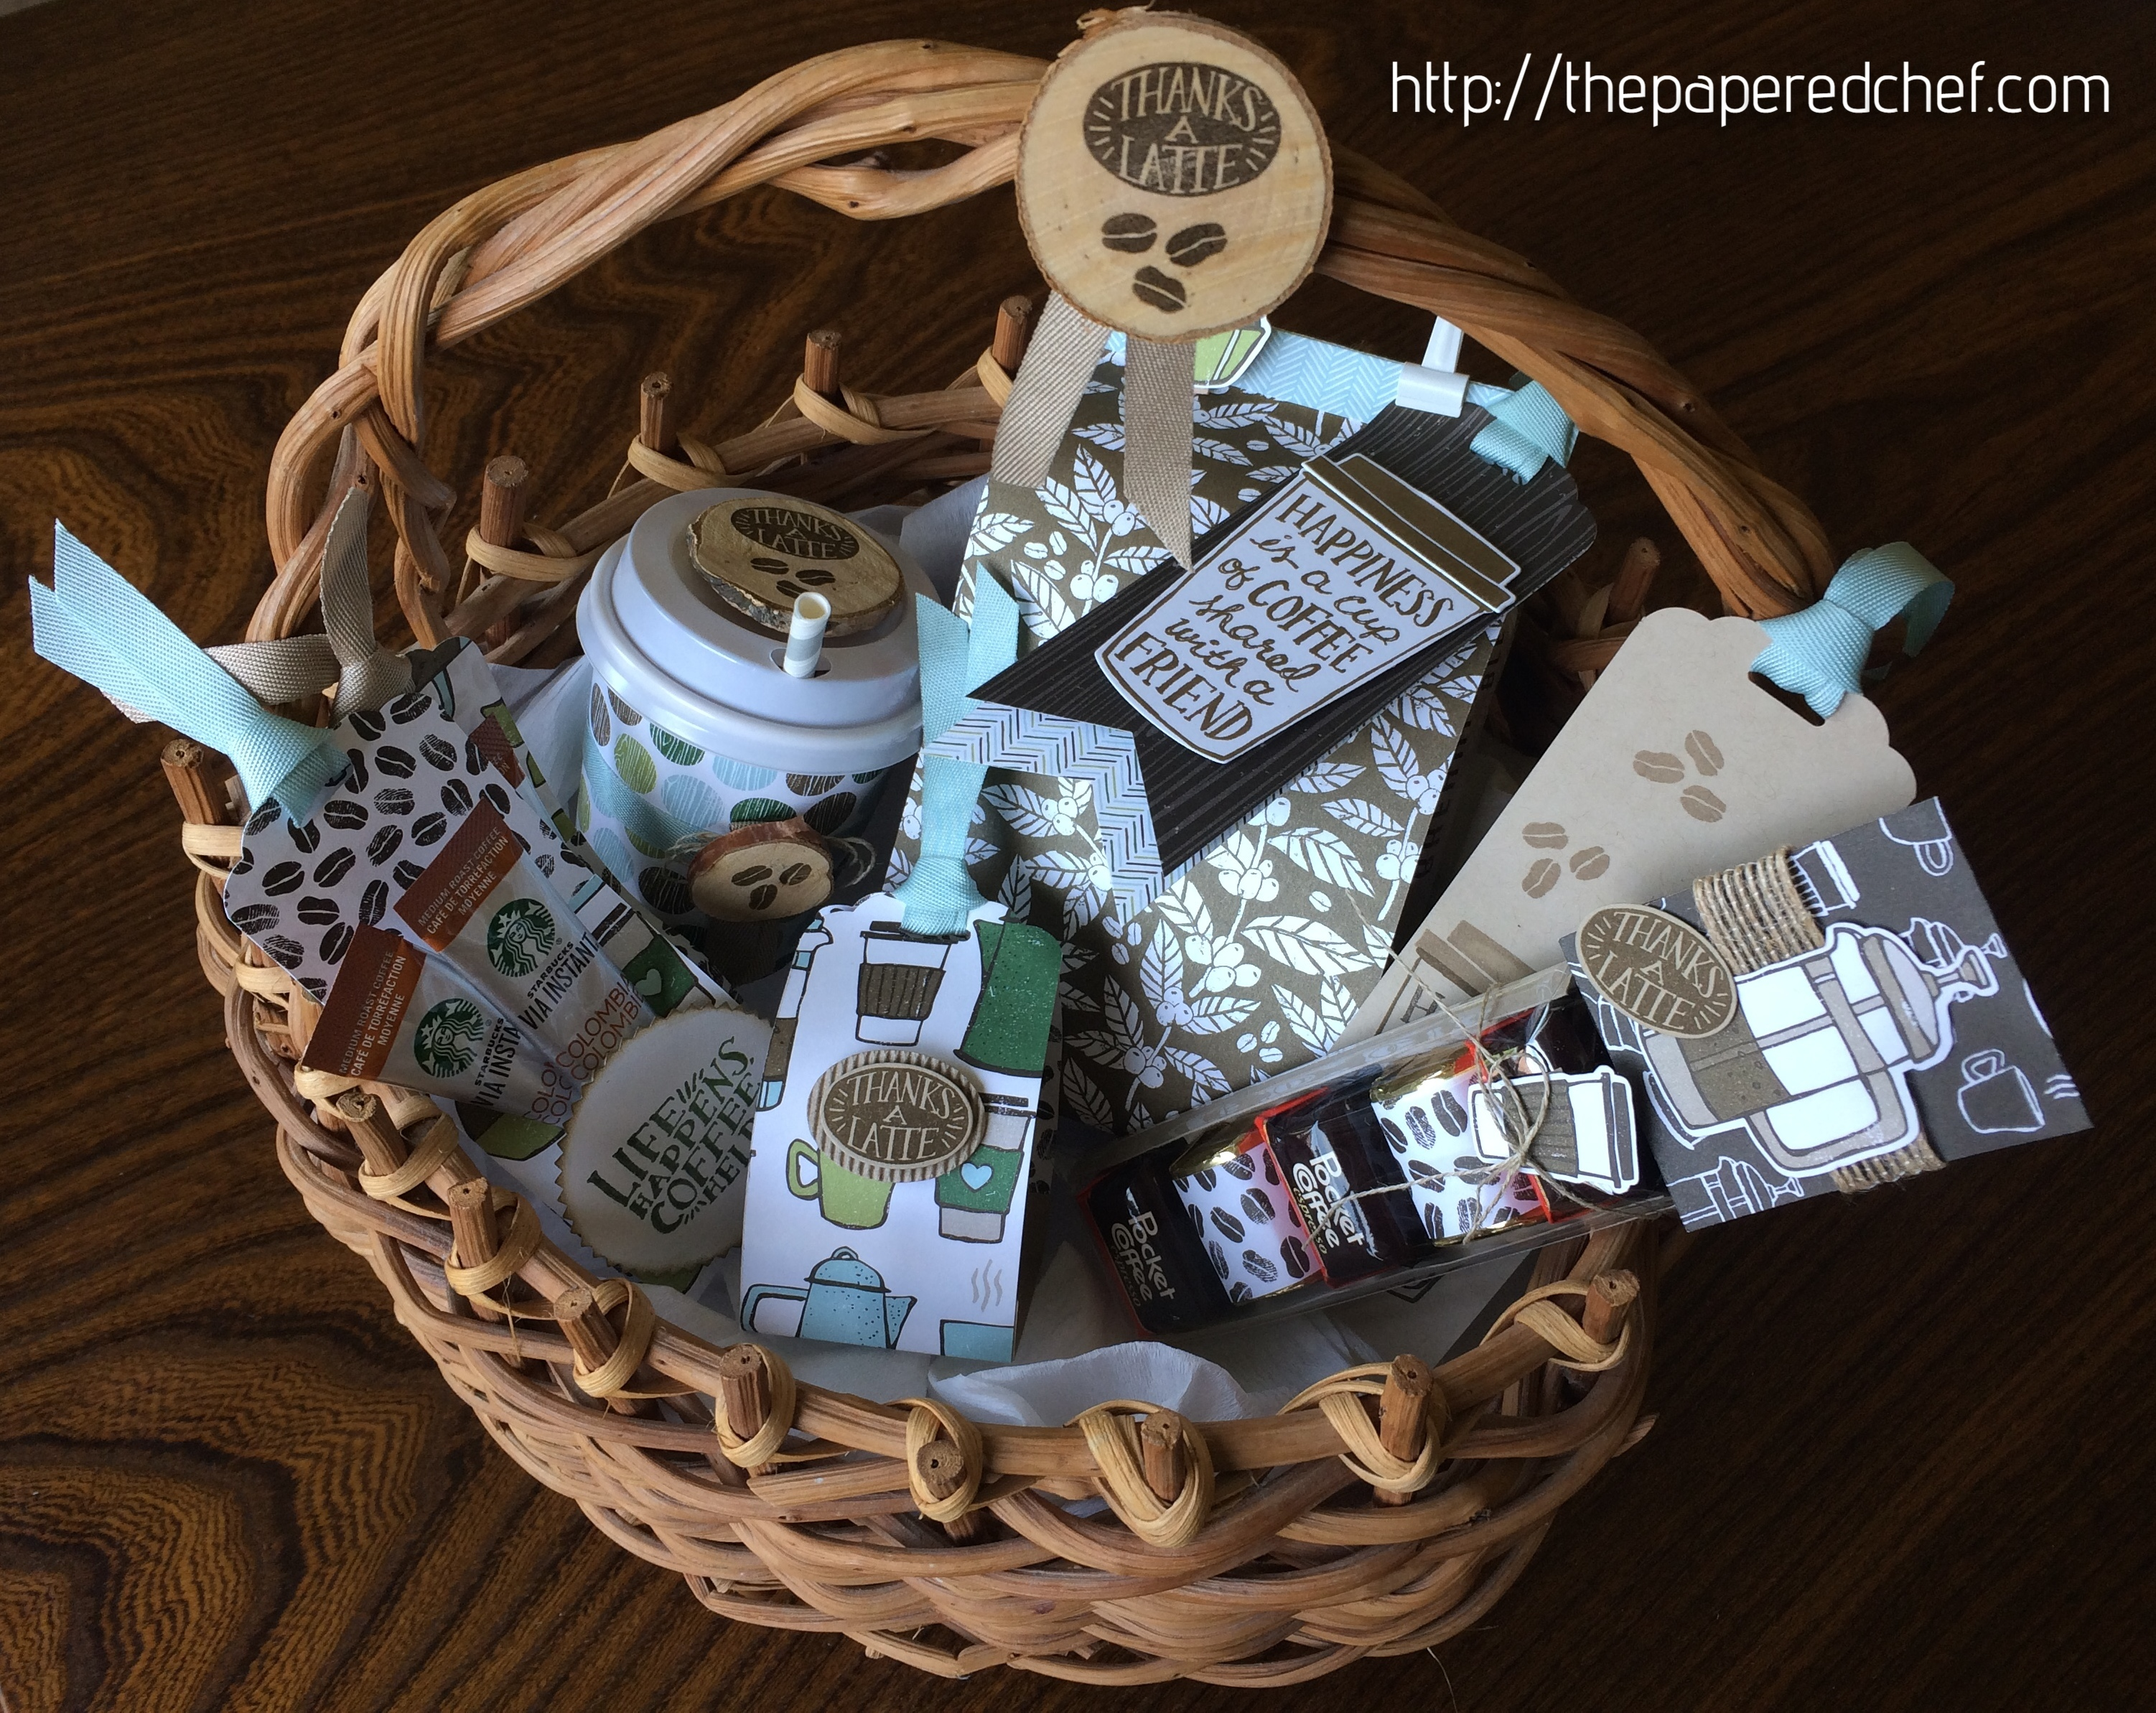 Coffee Break Basket containing coffee, candy, tags, and a candle